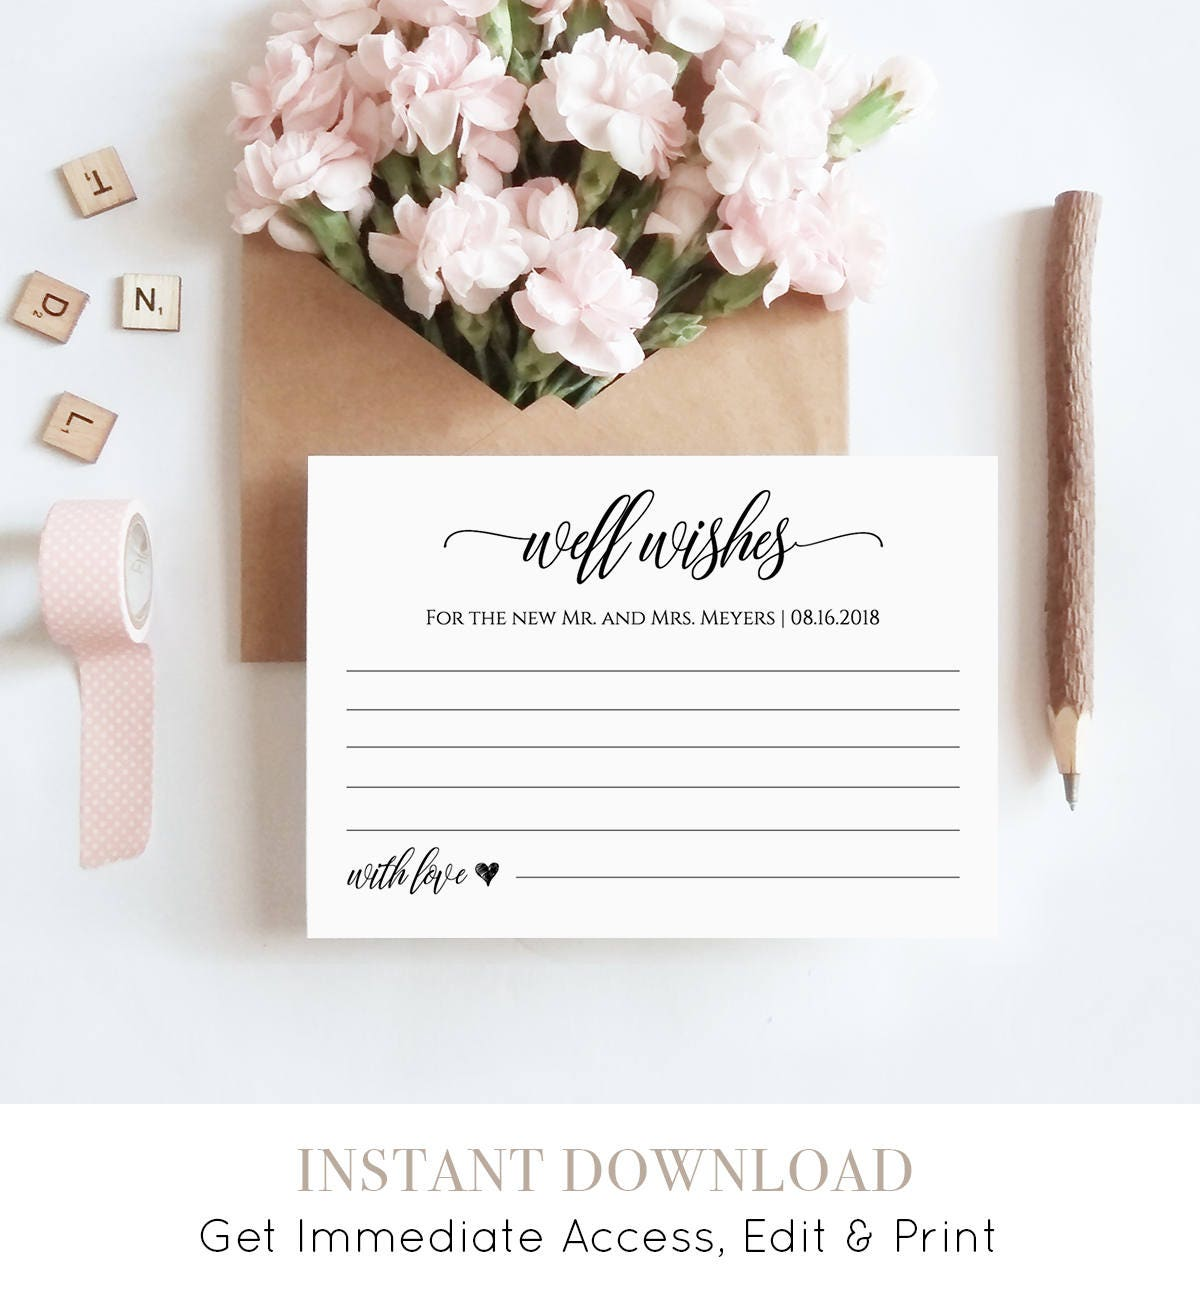 well wishes printable wedding advice card template for newlyweds bridal shower instant download 100 editable digital 023 104ec